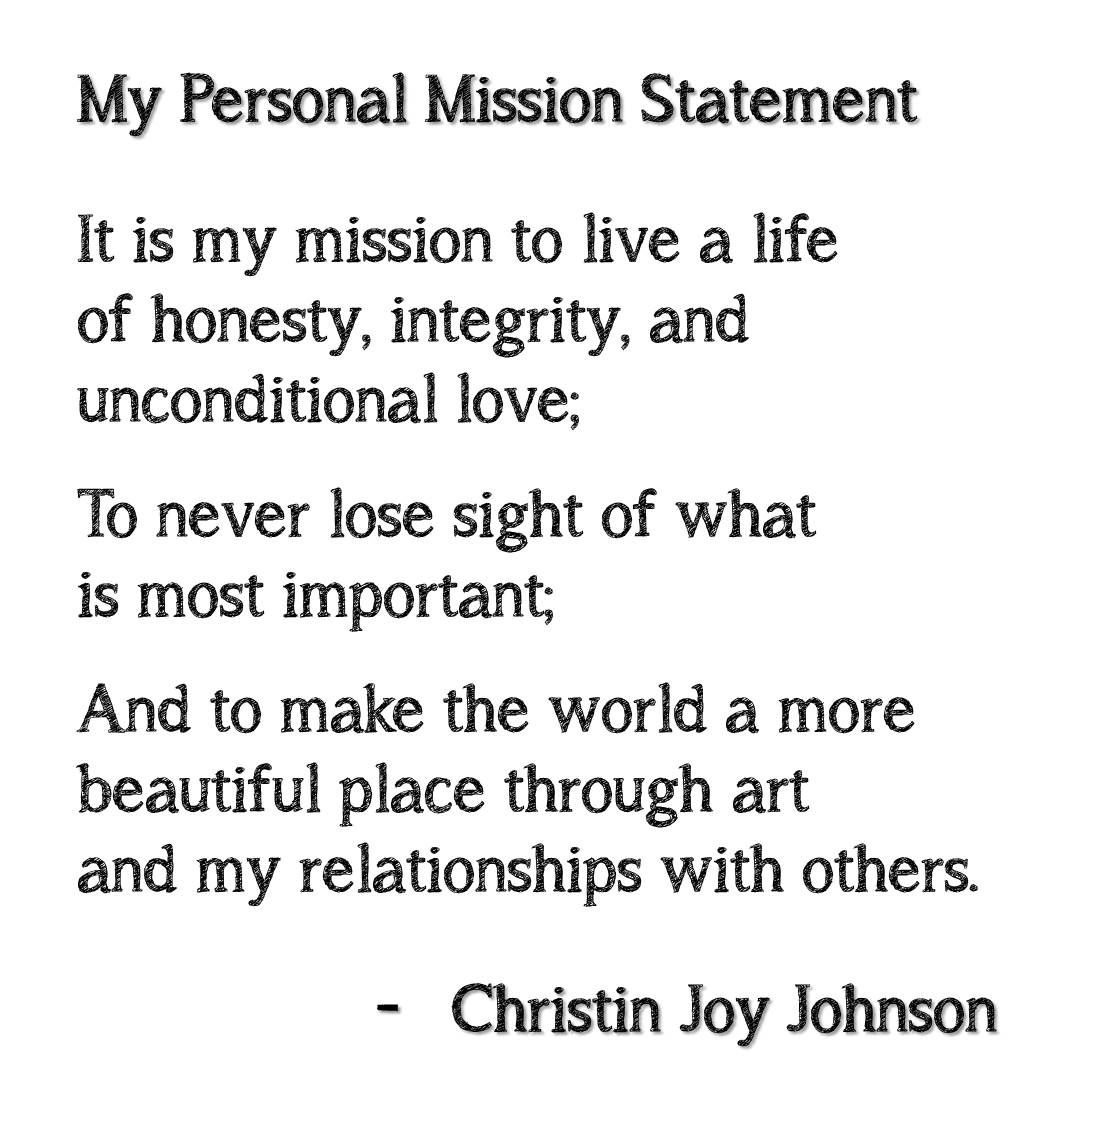 Personal mission statement in life